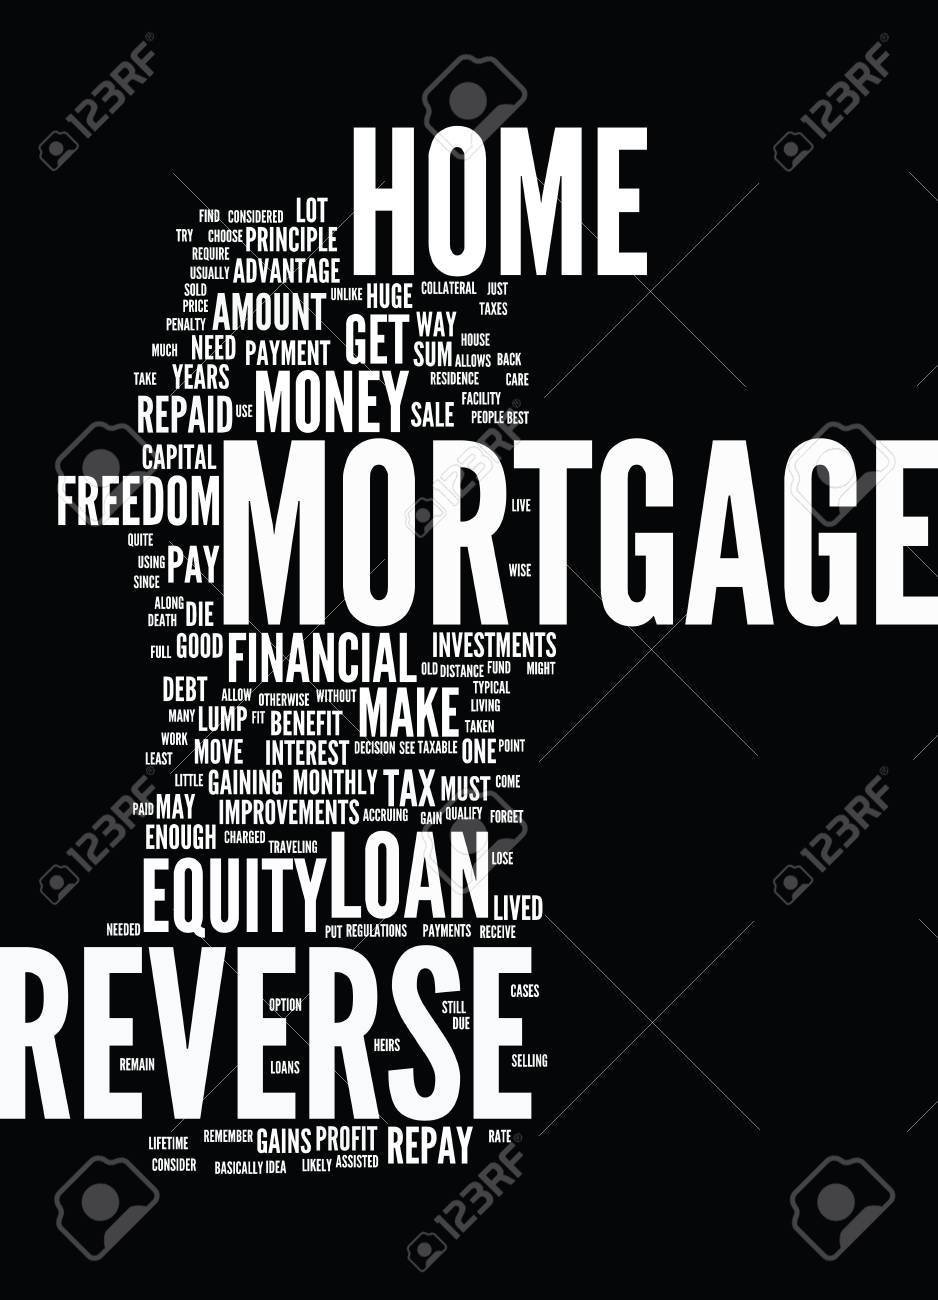 10 Fantastic Is Reverse Mortgage A Good Idea financial freedom reverse mortgage forget capital gains tax text 2020